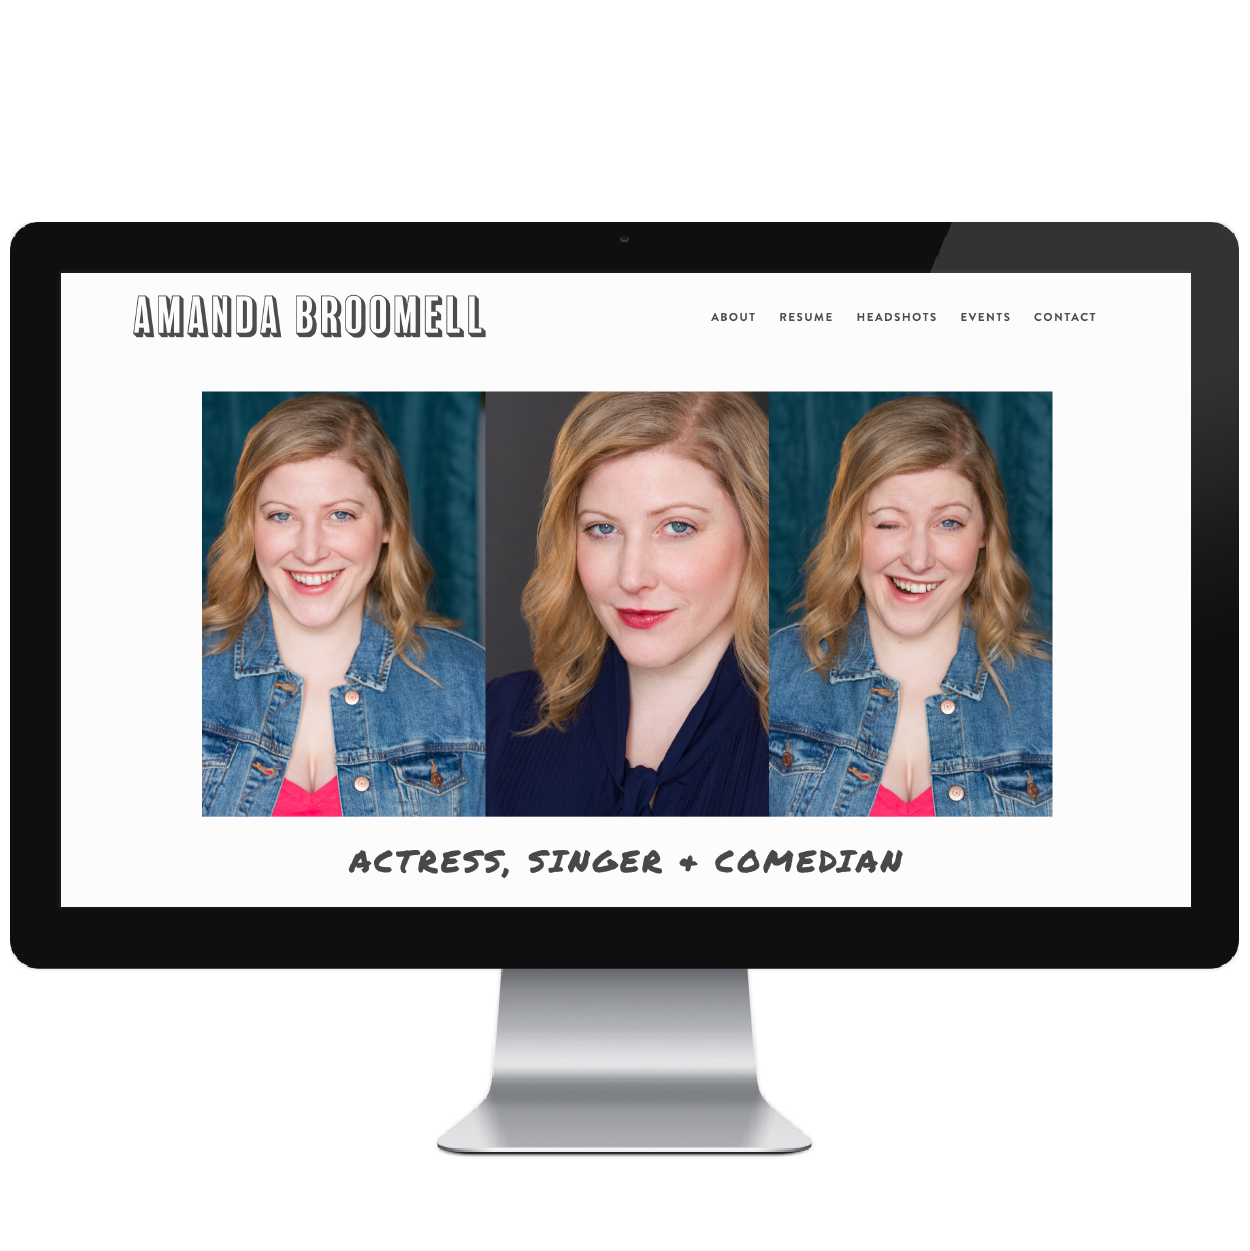 Amanda Broomell // Five Design Co. custom Squarespace website design portfolio